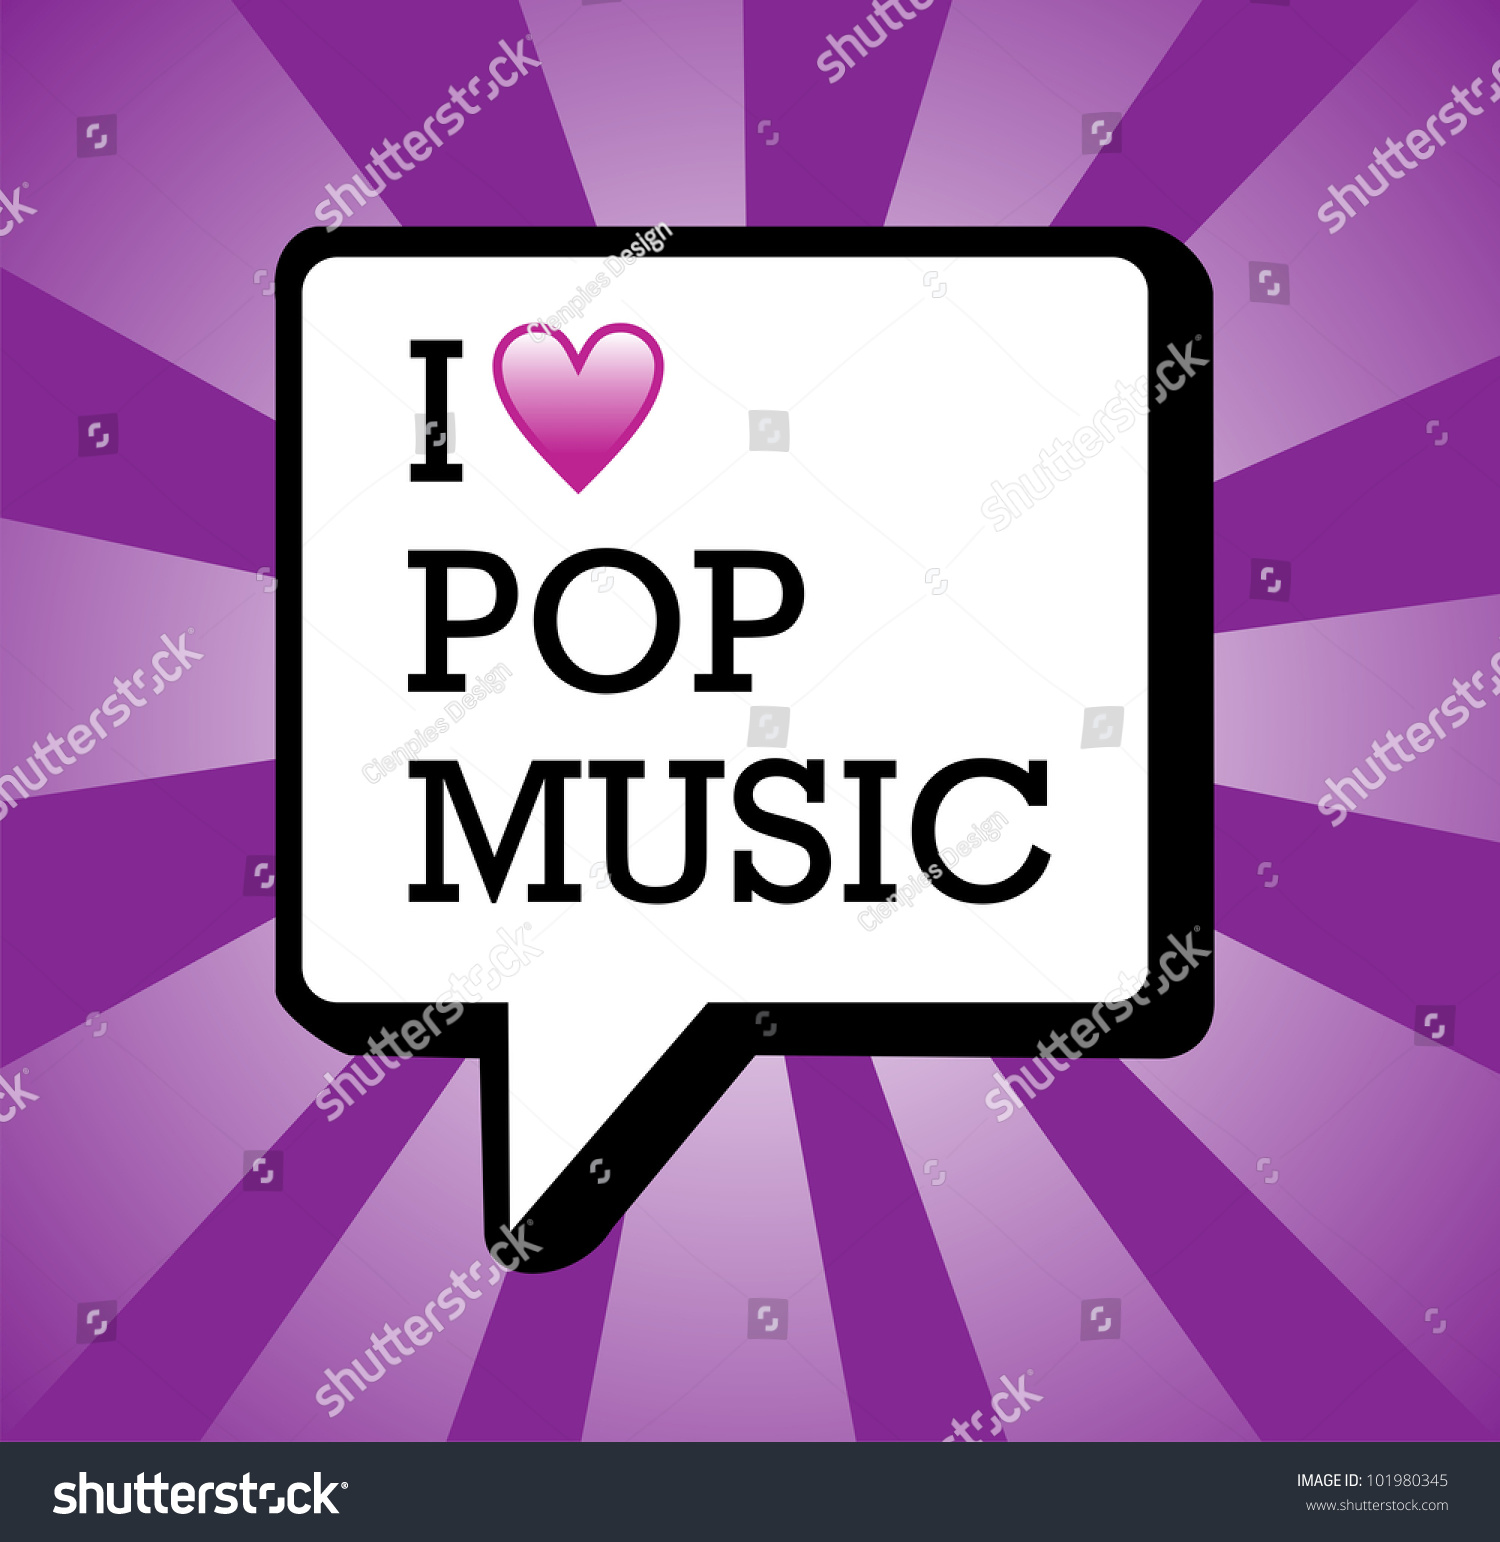 I Love Pop Music Text In Communication Bubble Background